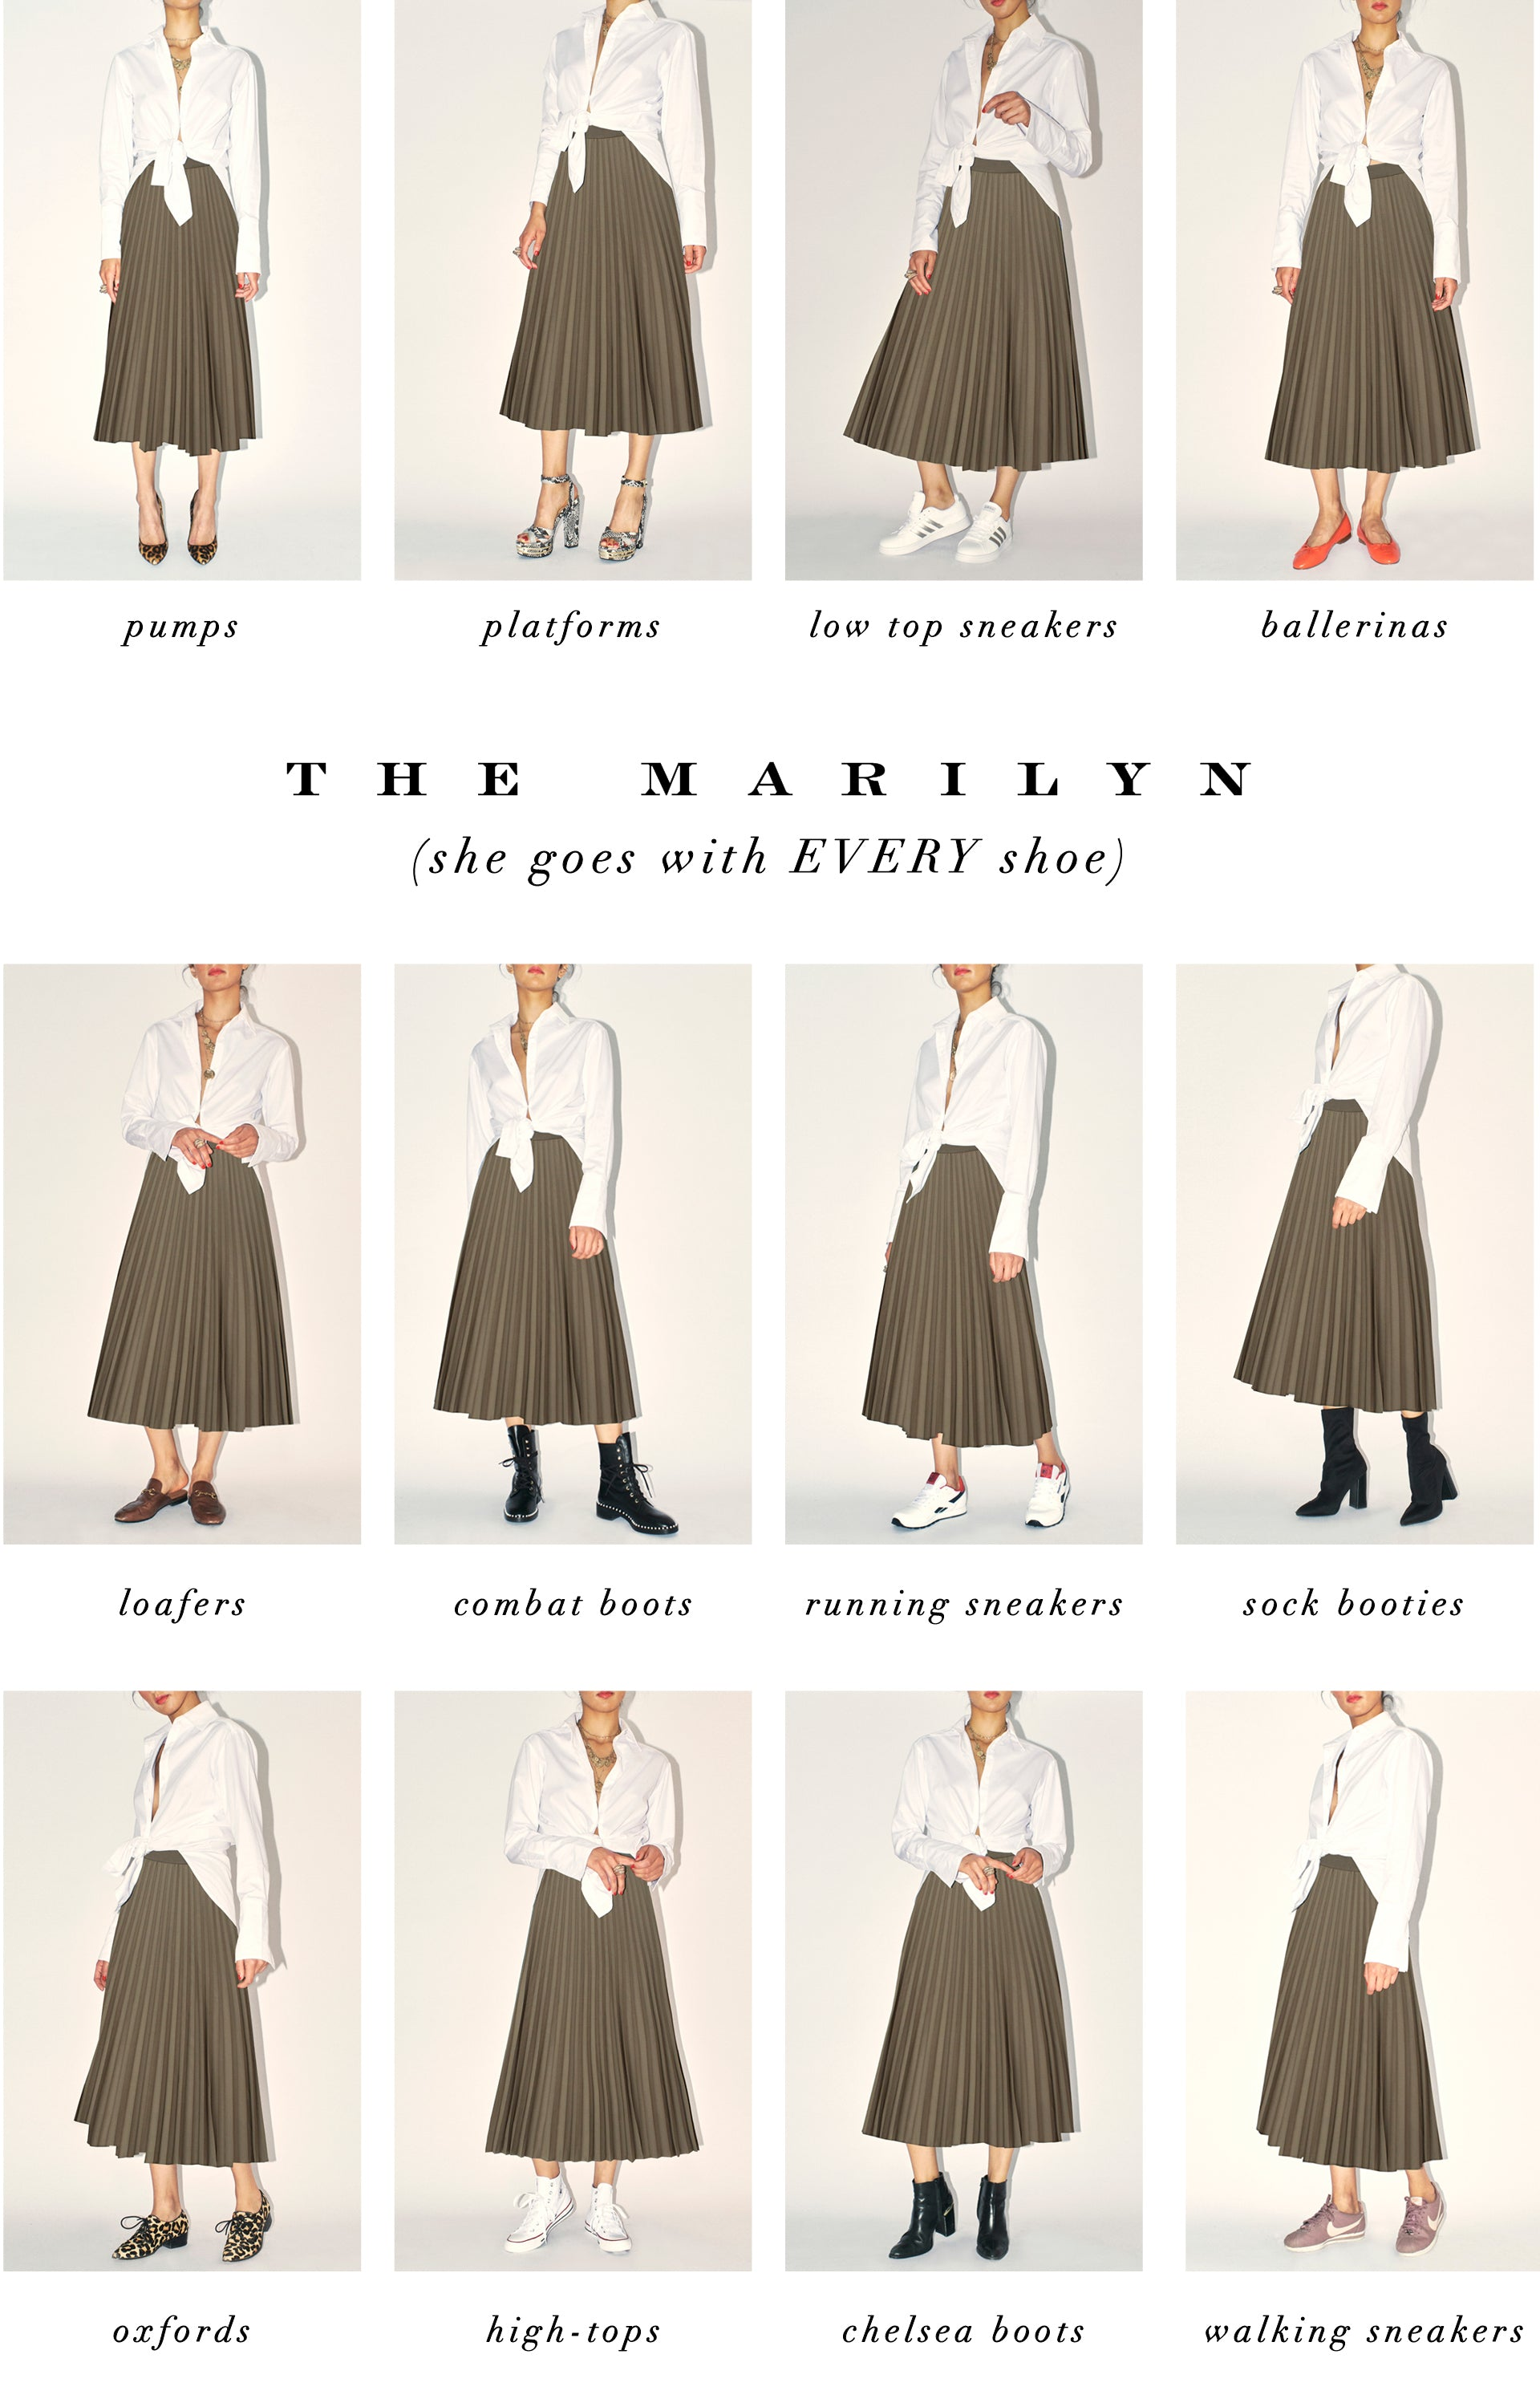 The Marilyn skirt goes with every shoe